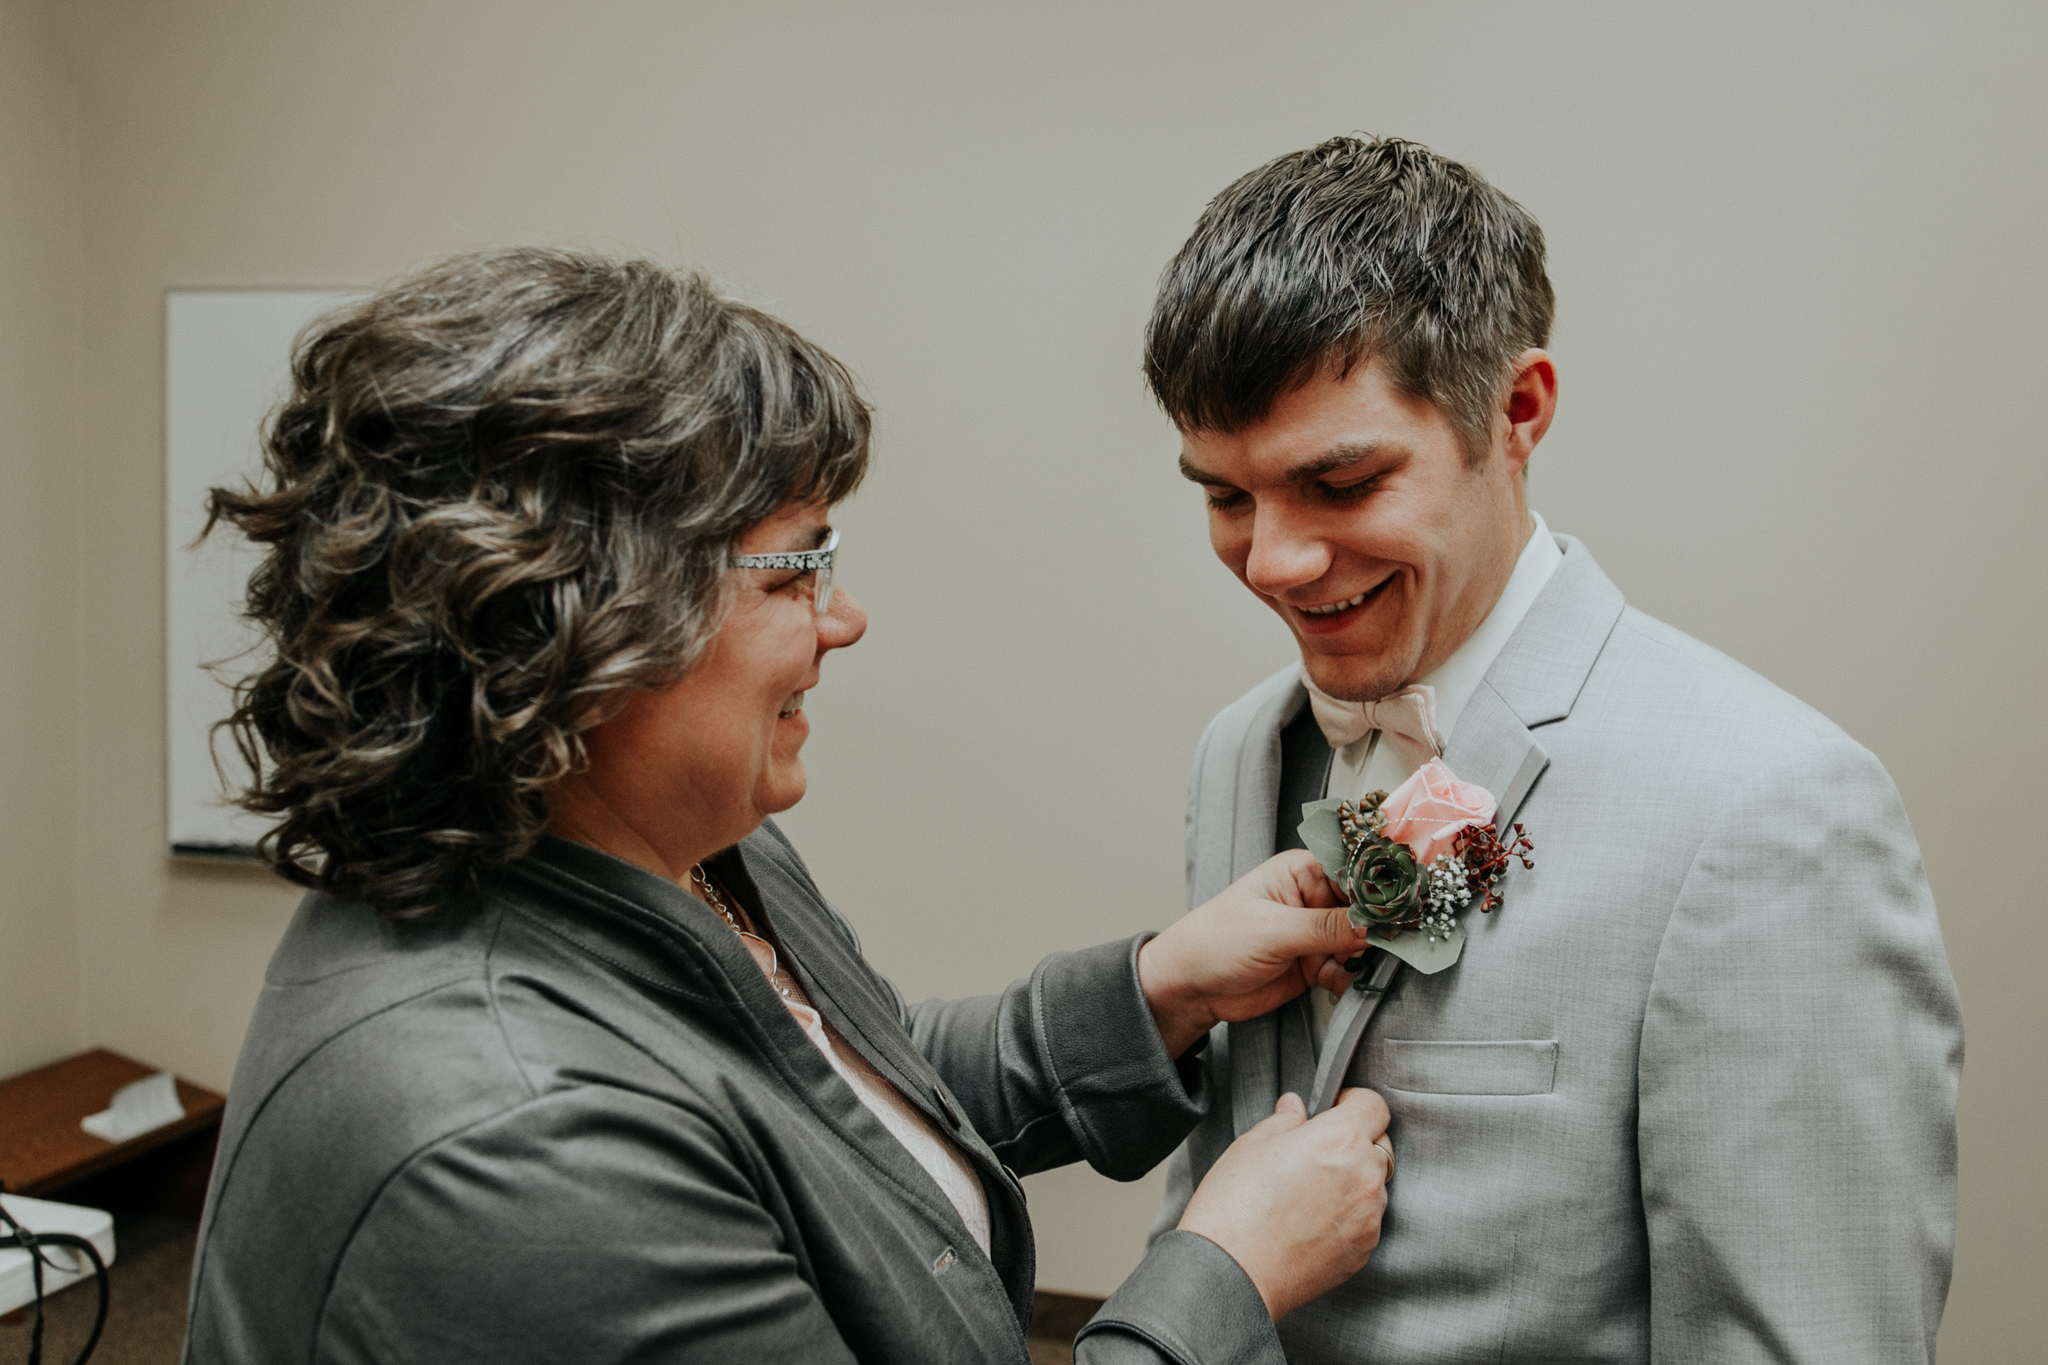 lethbridge-wedding-photographer-love-and-be-loved-photography-steven-marlene-reformed-church-photo-picture-image-3.jpg